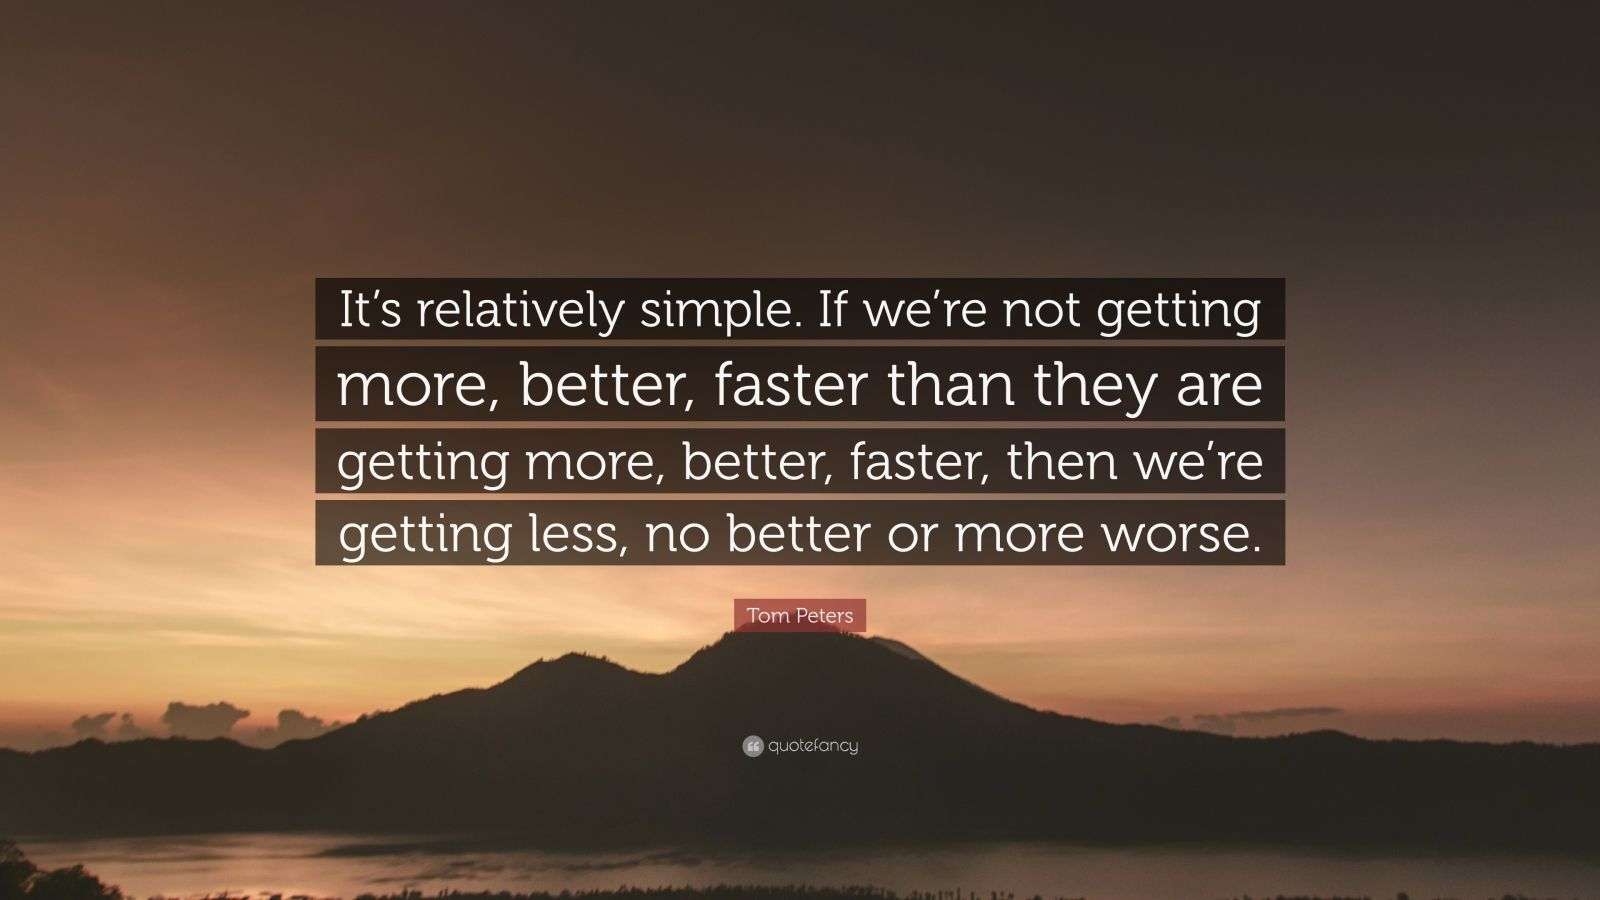 """Tom Peters Quote: """"It's relatively simple. If we're not getting more, better, faster than they are getting more, better, faster, then we're getting less, no better or more worse."""""""